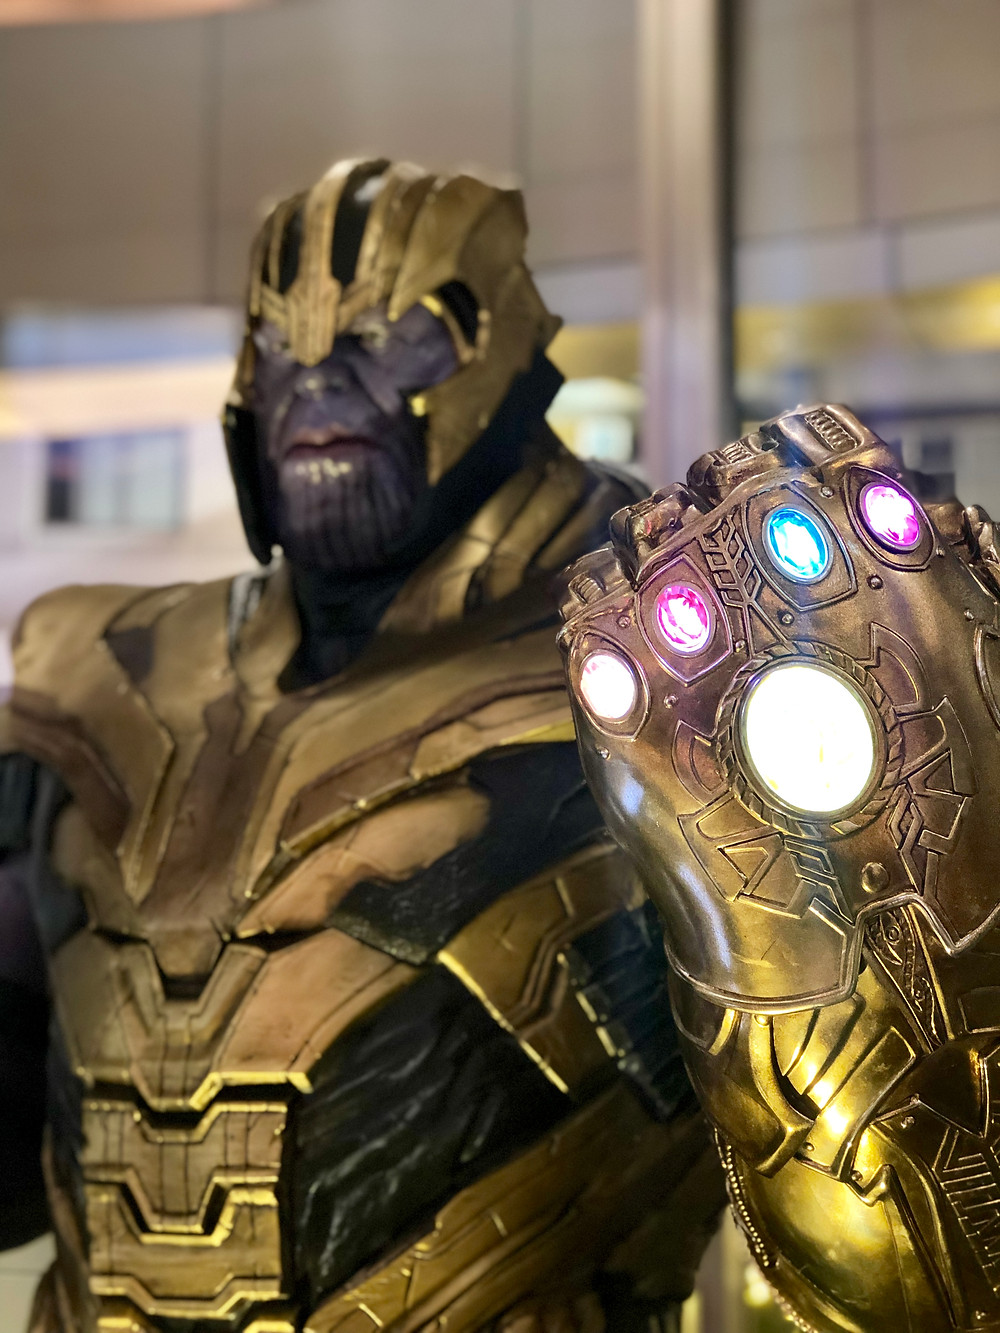 Hong Kong Avengers Endgame Exhibition Thanos